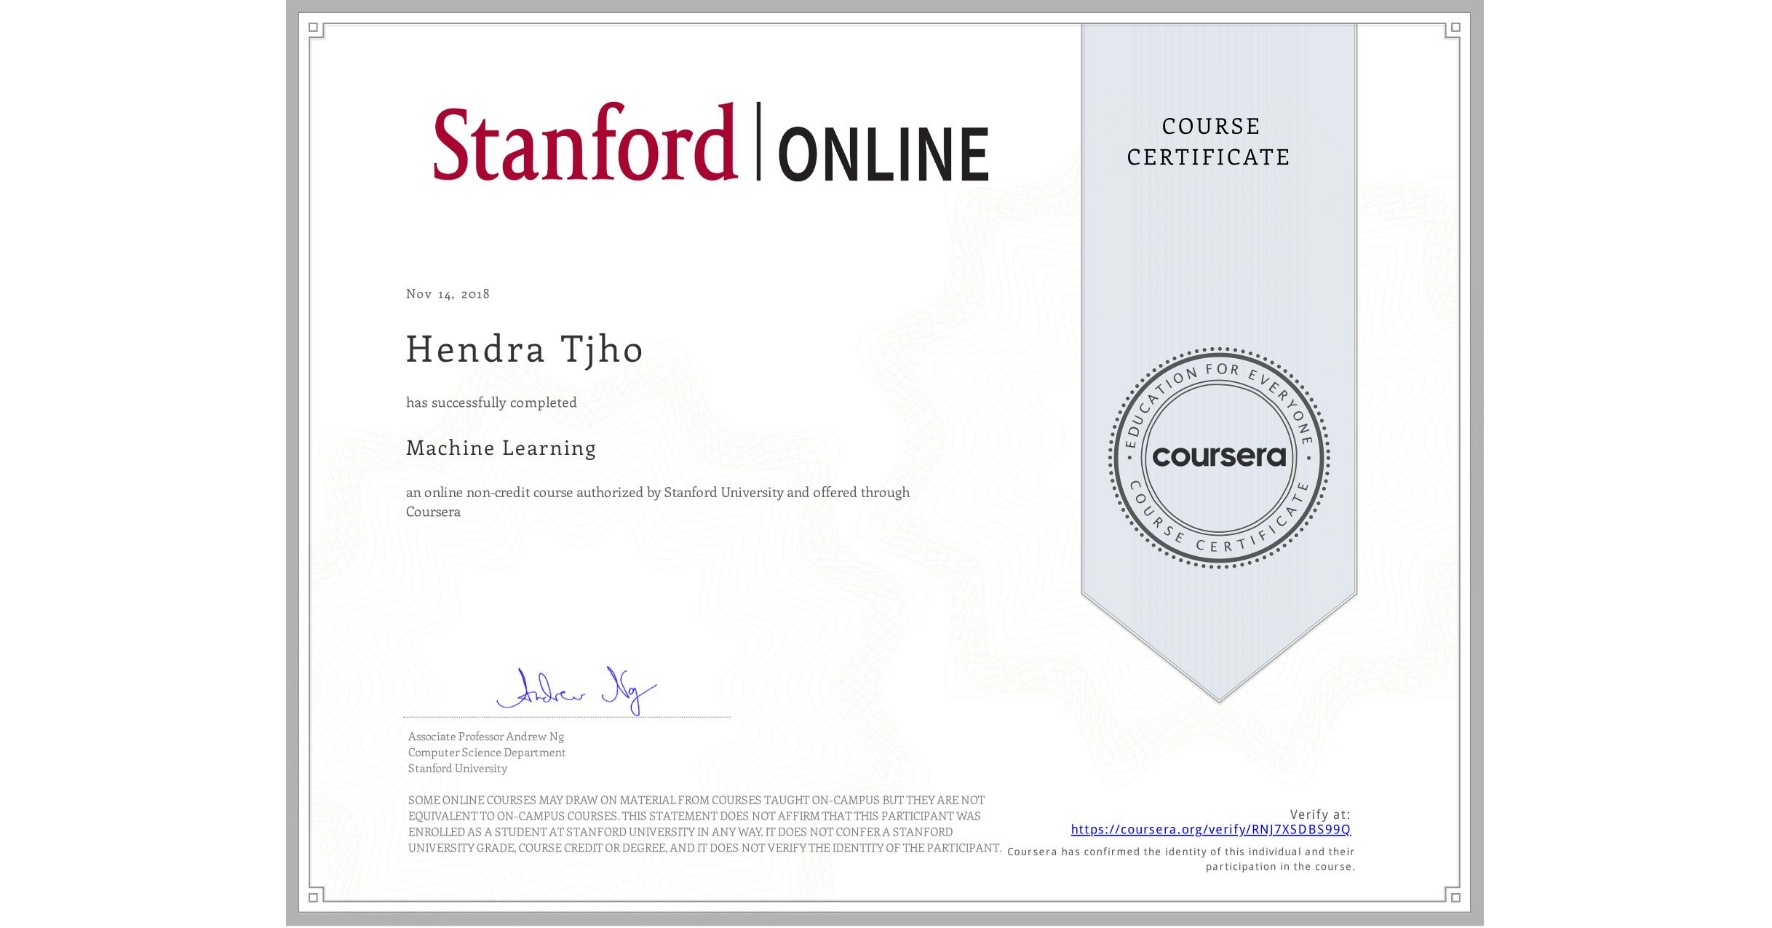 View certificate for Hendra Tjho, Machine Learning, an online non-credit course authorized by Stanford University and offered through Coursera